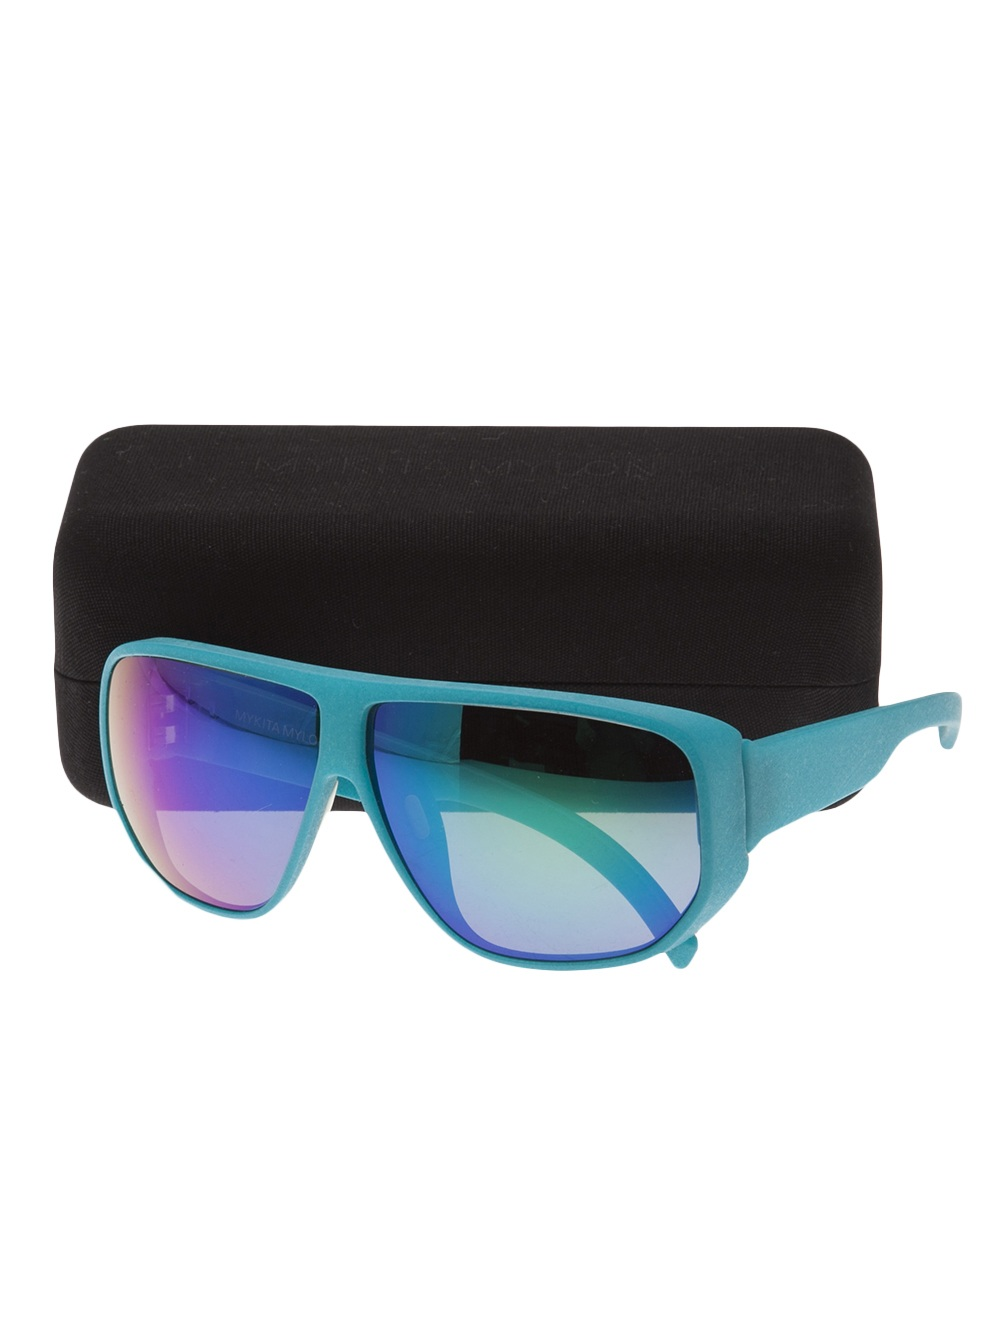 Mykita Lark Sunglasses in Green (Blue)